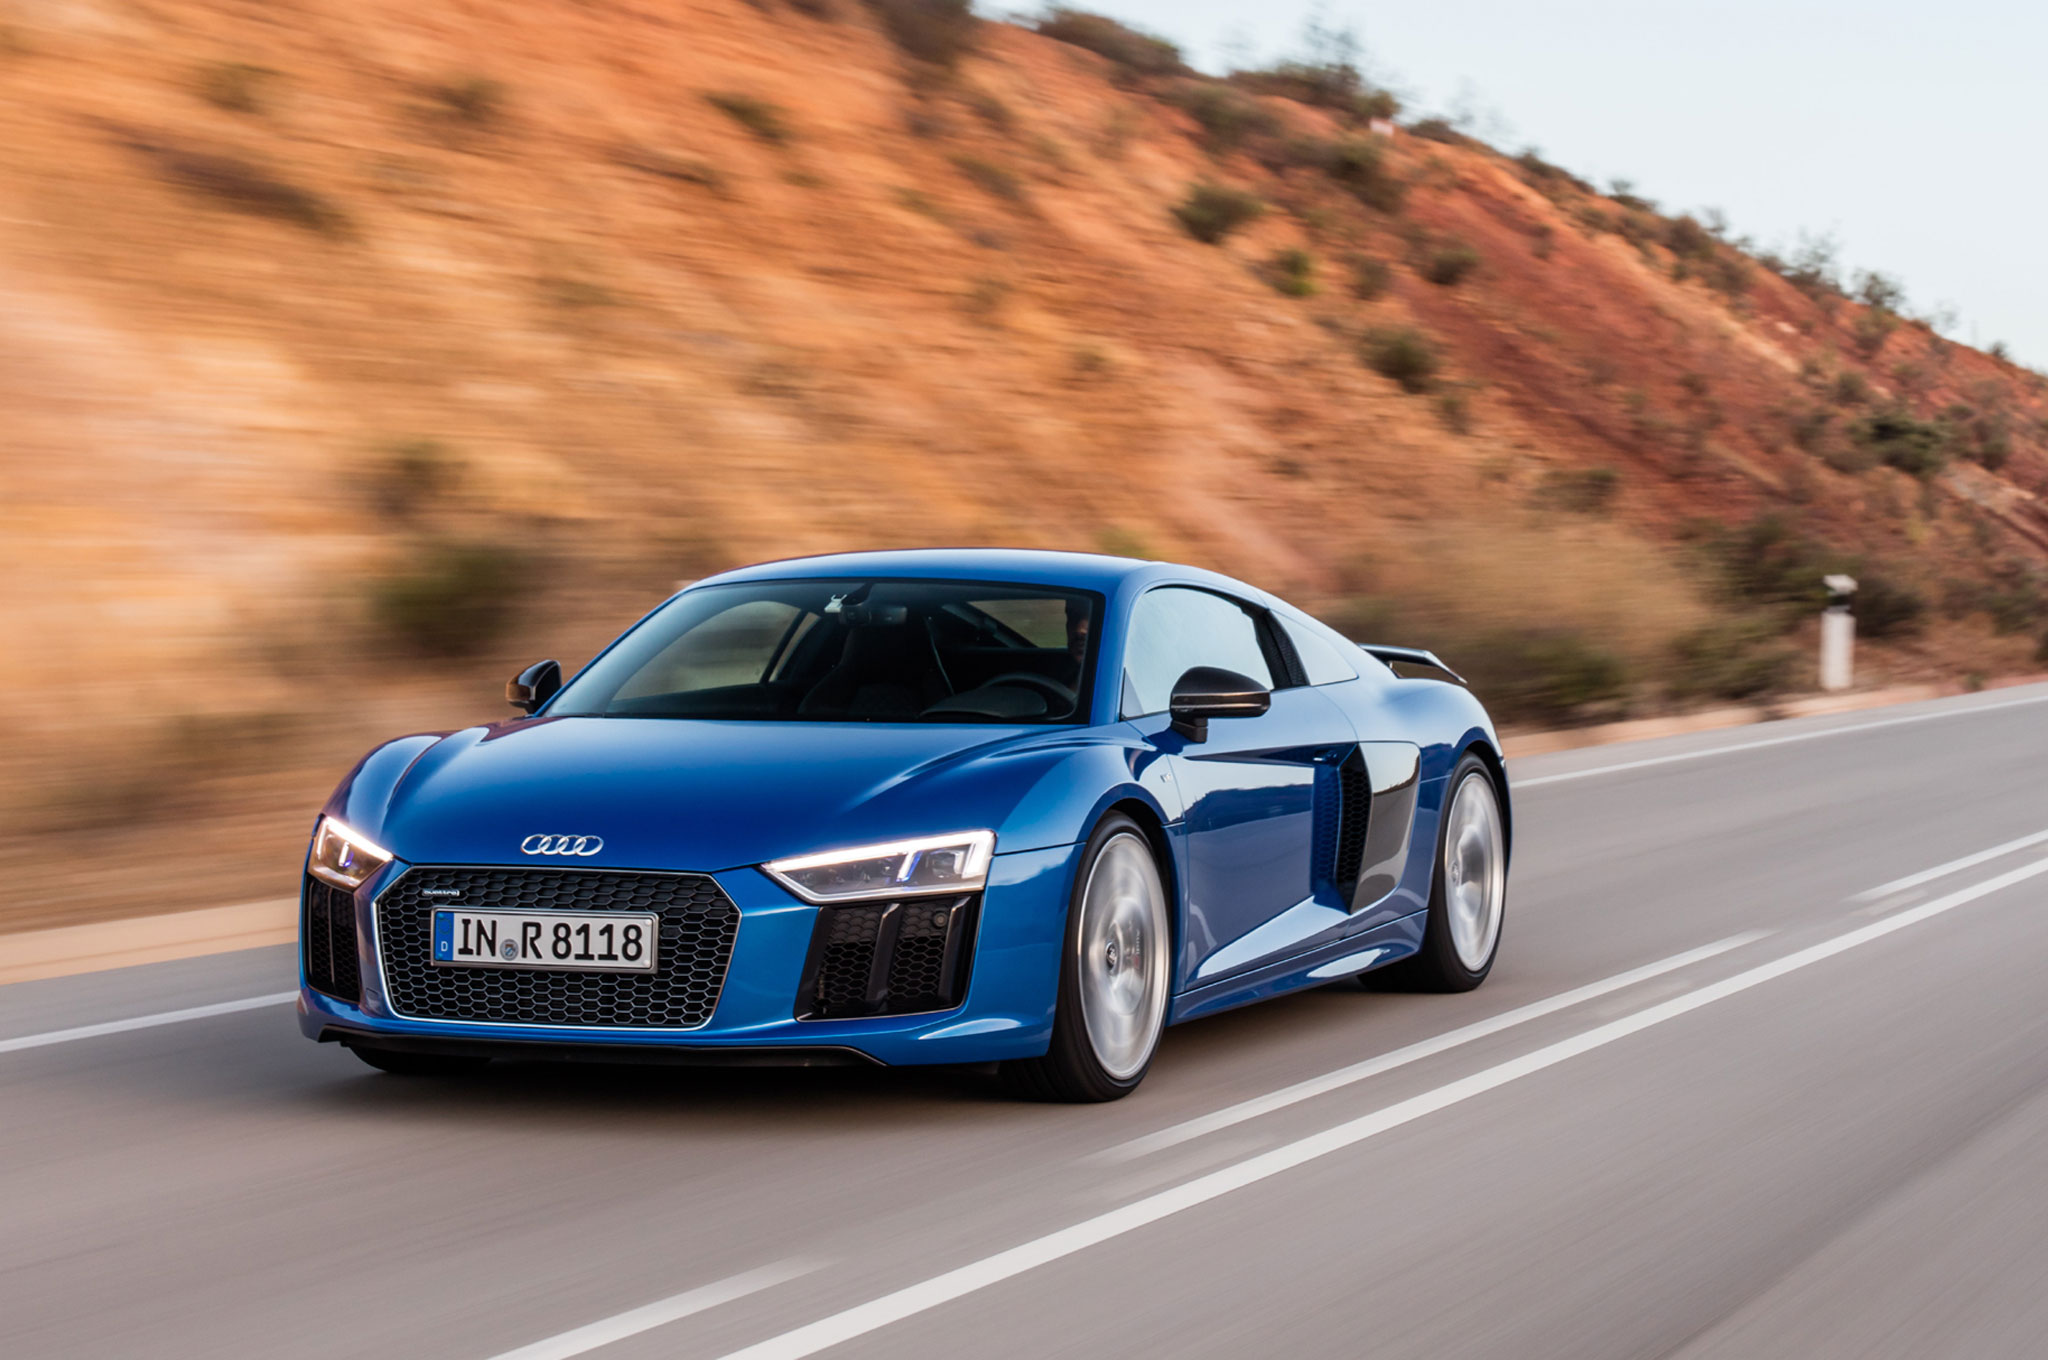 Audi R8 wallpapers, Vehicles, HQ Audi R8 pictures | 4K ...